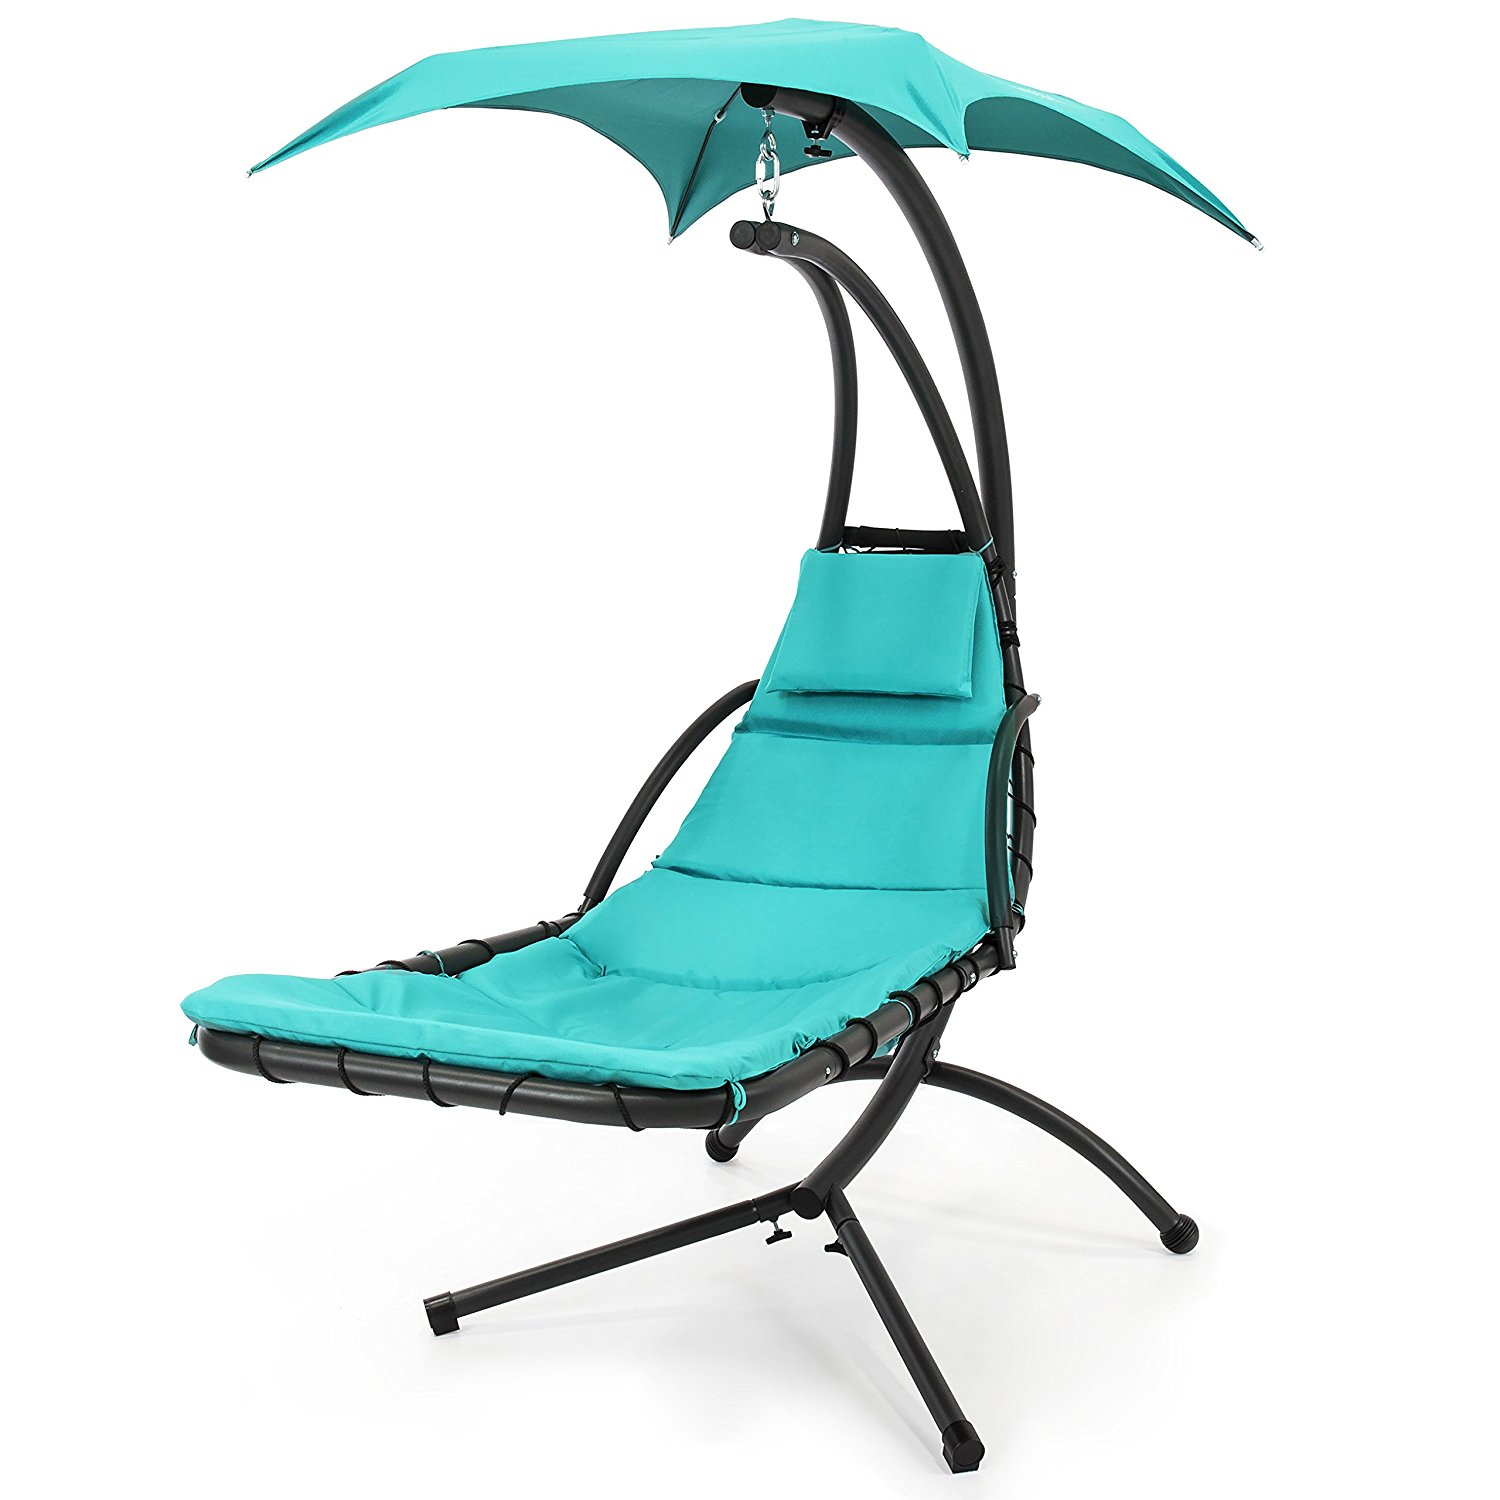 Hanging Chaise Lounger by Best Choice Products